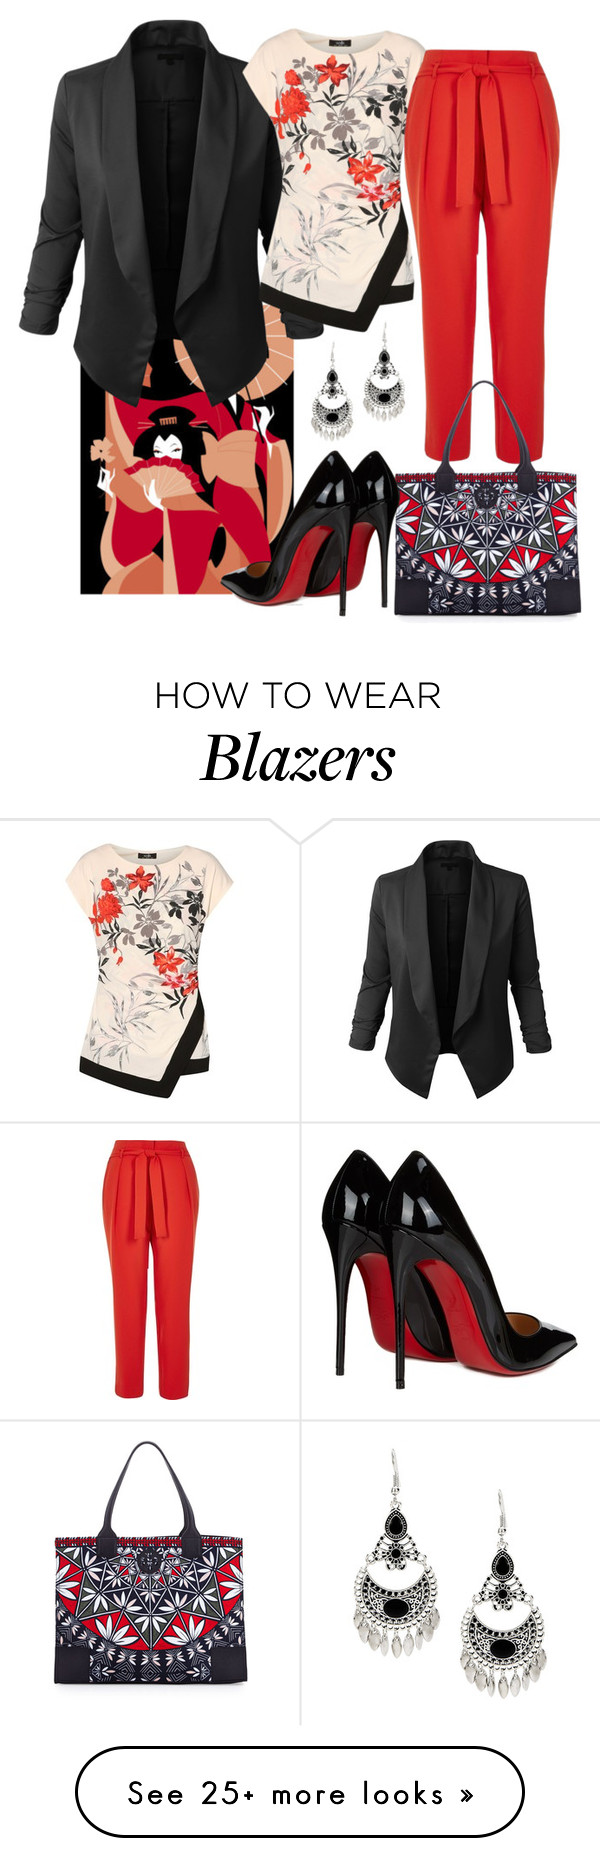 """""""oriental"""" by minaagar on Polyvore featuring LE3NO, River Island, Tory Burch and Christian Louboutin"""